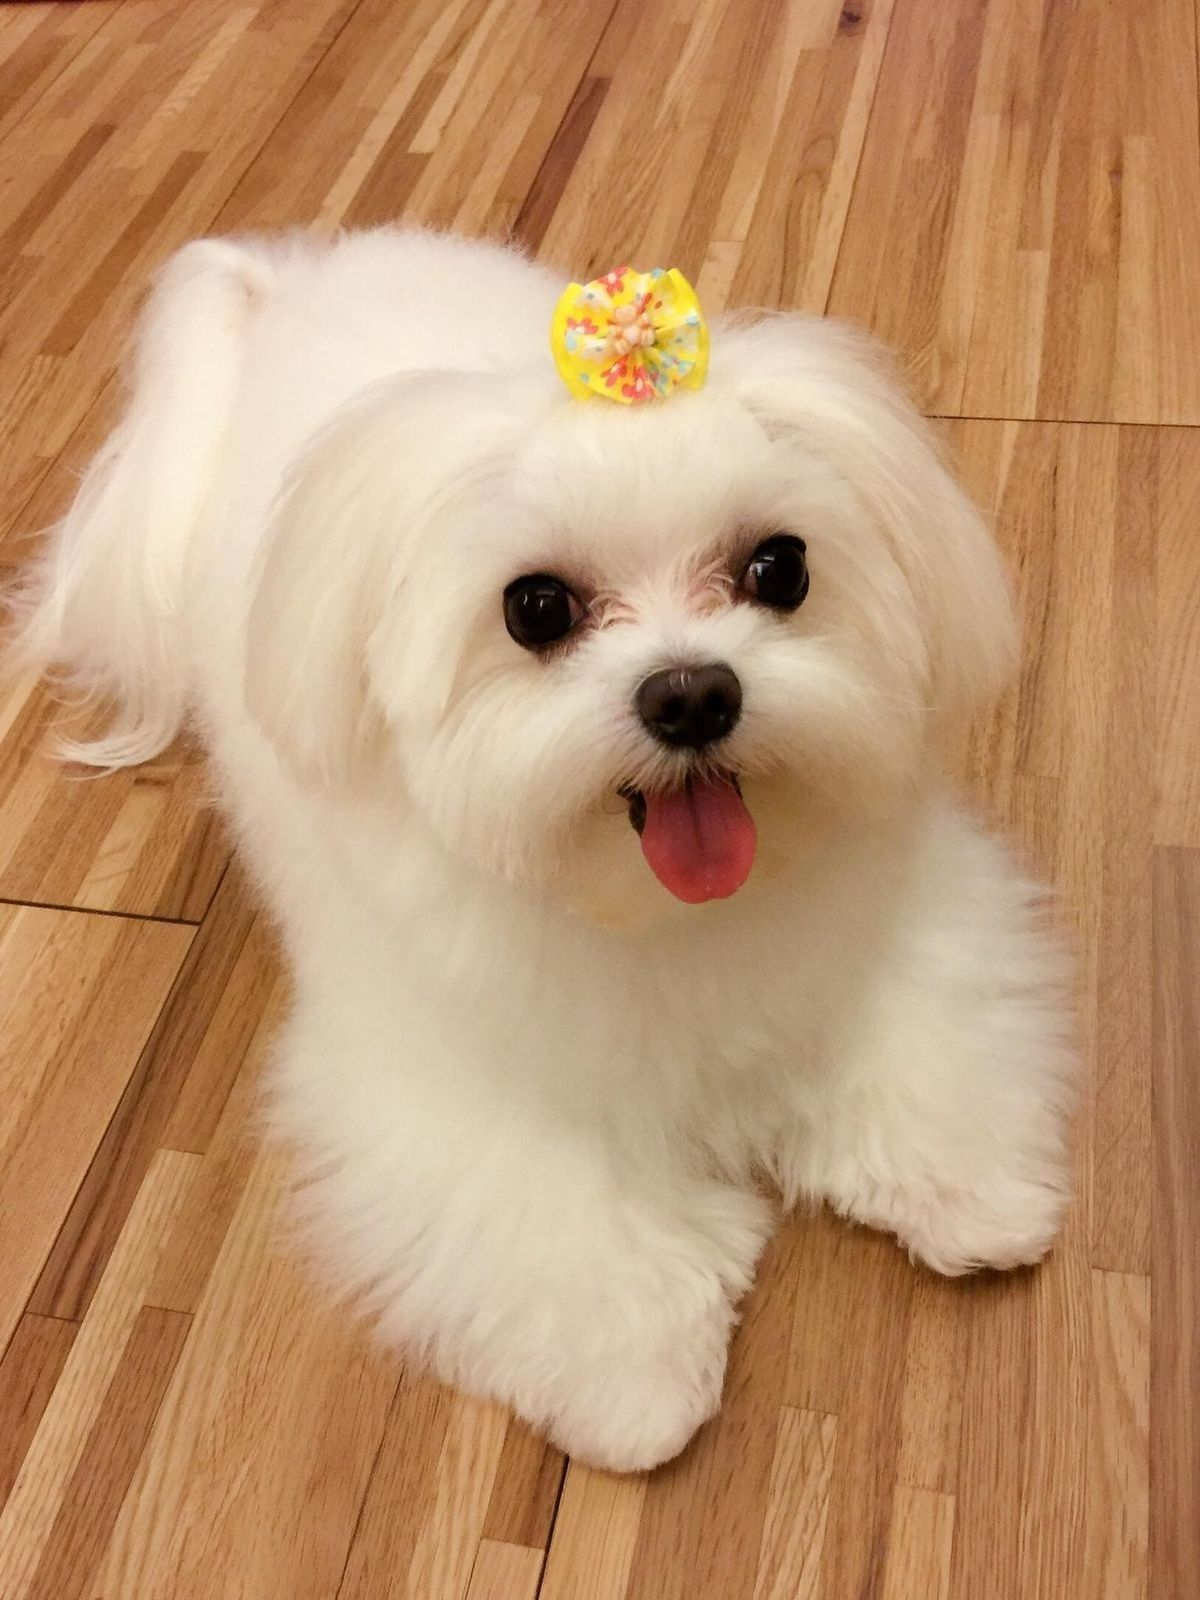 Pin by Tanu_mehra on Dogs loverz Cute puppies, Maltese